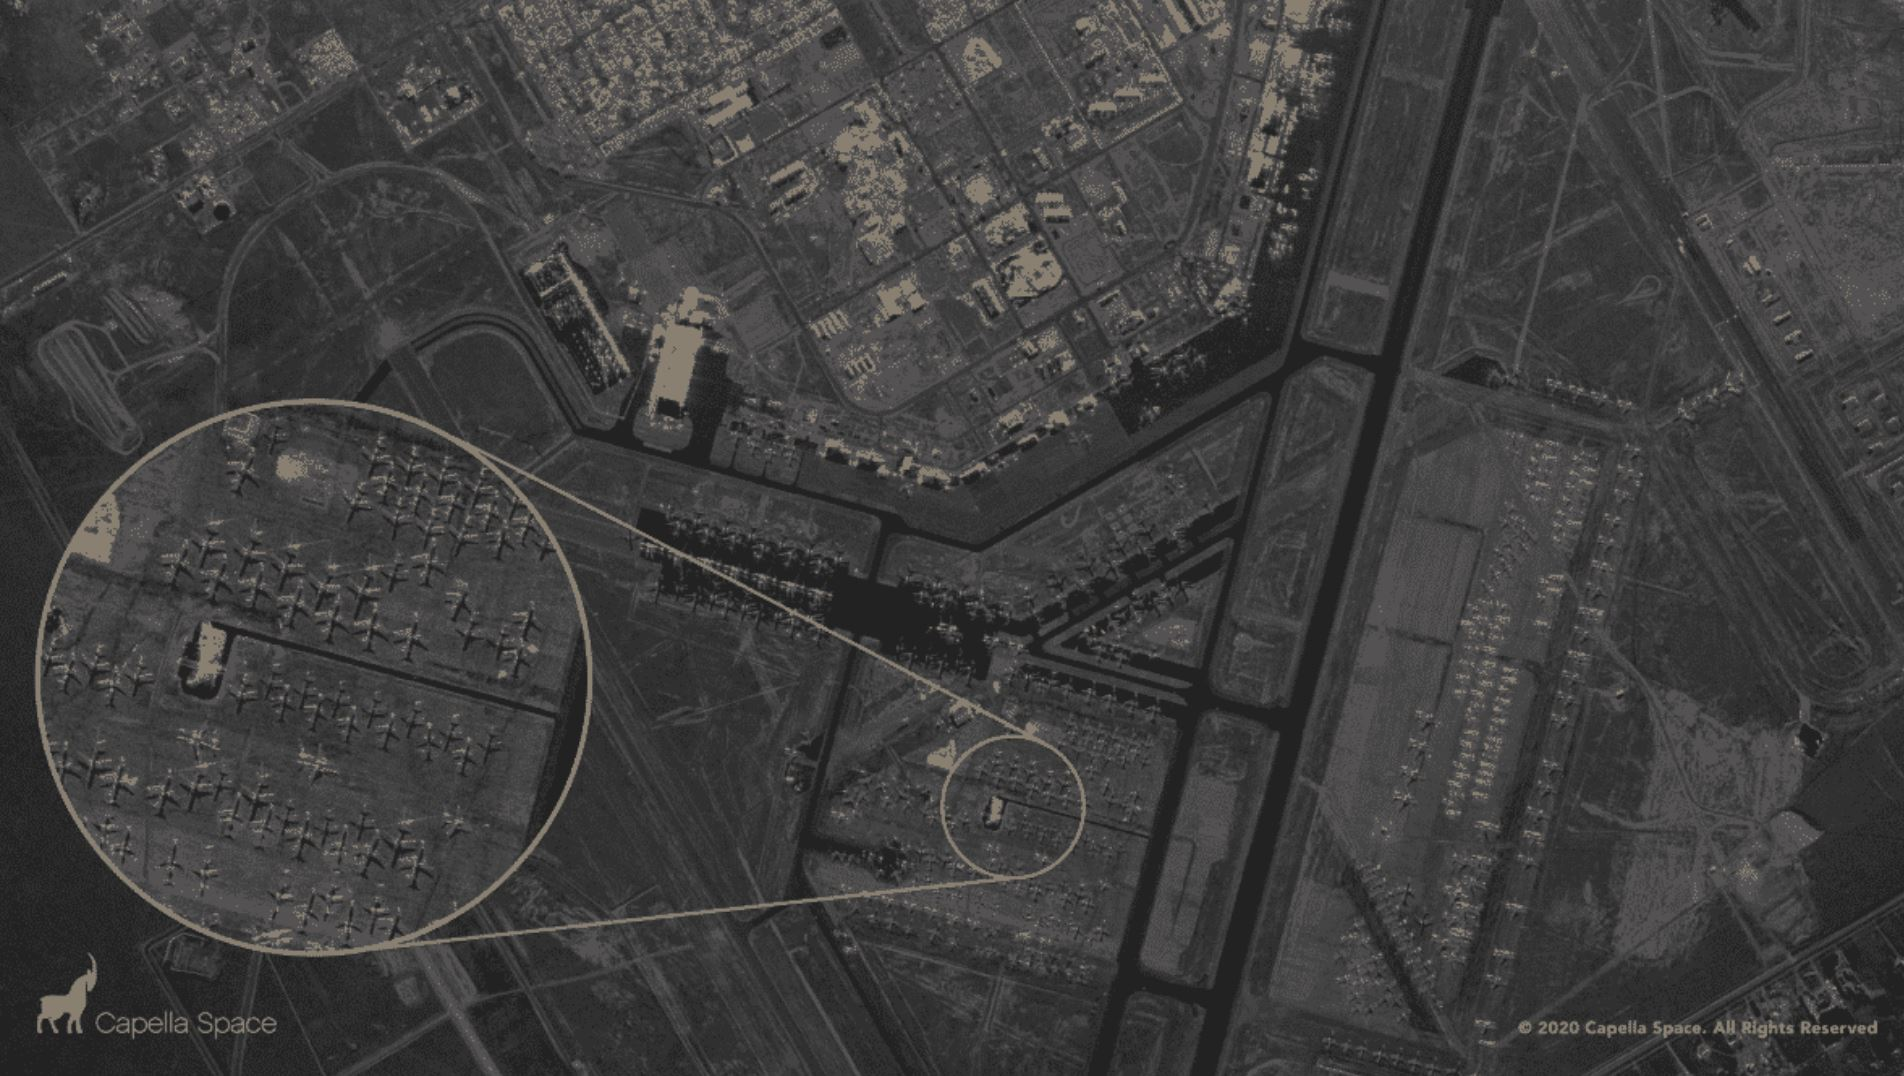 Despite Clouds Or Darkness, New Satellite Can See Into Buildings